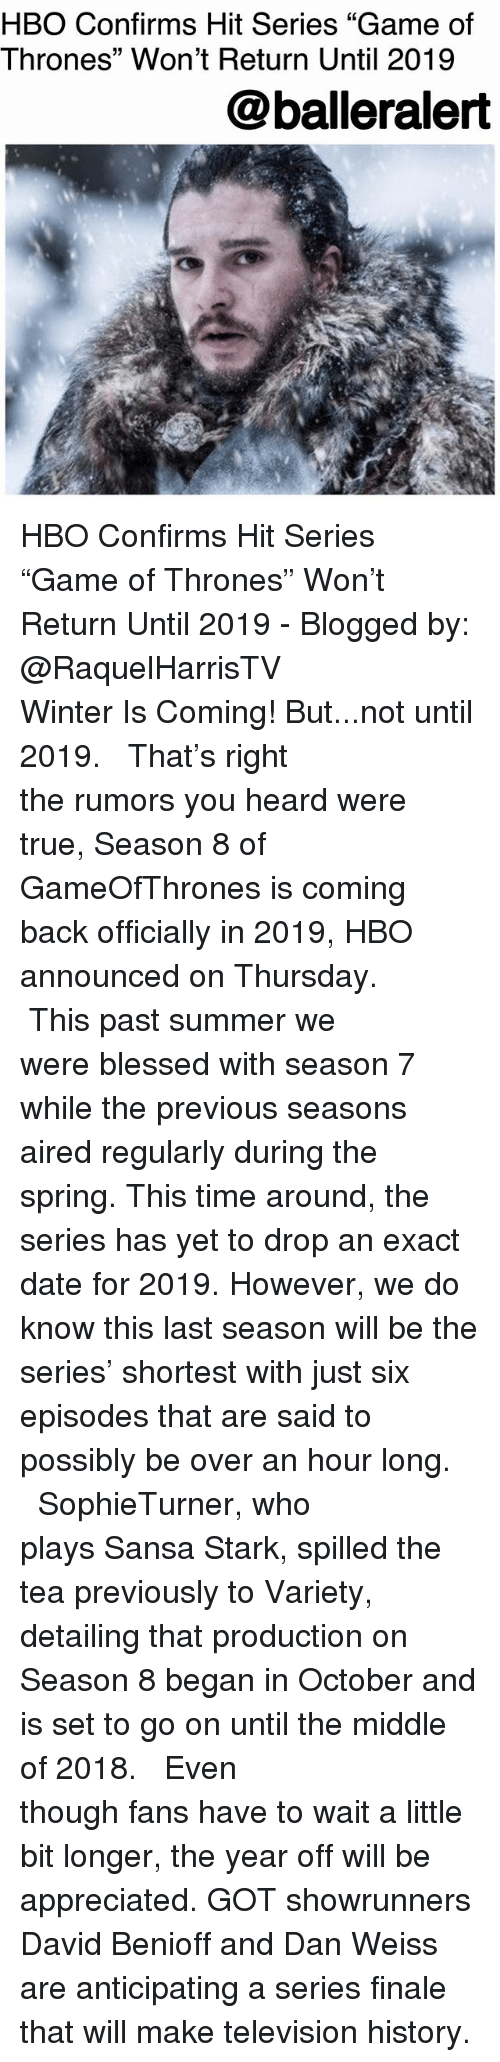 "Blessed, Game of Thrones, and Hbo: HBO Confirms Hit Series ""Game of  Thrones"" Won't Return Until 2019  @balleralert HBO Confirms Hit Series ""Game of Thrones"" Won't Return Until 2019 - Blogged by: @RaquelHarrisTV ⠀⠀⠀⠀⠀⠀⠀⠀⠀ ⠀⠀⠀⠀⠀⠀⠀⠀⠀ Winter Is Coming! But...not until 2019. ⠀⠀⠀⠀⠀⠀⠀⠀⠀ ⠀⠀⠀⠀⠀⠀⠀⠀⠀ That's right the rumors you heard were true, Season 8 of GameOfThrones is coming back officially in 2019, HBO announced on Thursday. ⠀⠀⠀⠀⠀⠀⠀⠀⠀ ⠀⠀⠀⠀⠀⠀⠀⠀⠀ This past summer we were blessed with season 7 while the previous seasons aired regularly during the spring. This time around, the series has yet to drop an exact date for 2019. However, we do know this last season will be the series' shortest with just six episodes that are said to possibly be over an hour long. ⠀⠀⠀⠀⠀⠀⠀⠀⠀ ⠀⠀⠀⠀⠀⠀⠀⠀⠀ SophieTurner, who plays Sansa Stark, spilled the tea previously to Variety, detailing that production on Season 8 began in October and is set to go on until the middle of 2018. ⠀⠀⠀⠀⠀⠀⠀⠀⠀ ⠀⠀⠀⠀⠀⠀⠀⠀⠀ Even though fans have to wait a little bit longer, the year off will be appreciated. GOT showrunners David Benioff and Dan Weiss are anticipating a series finale that will make television history."